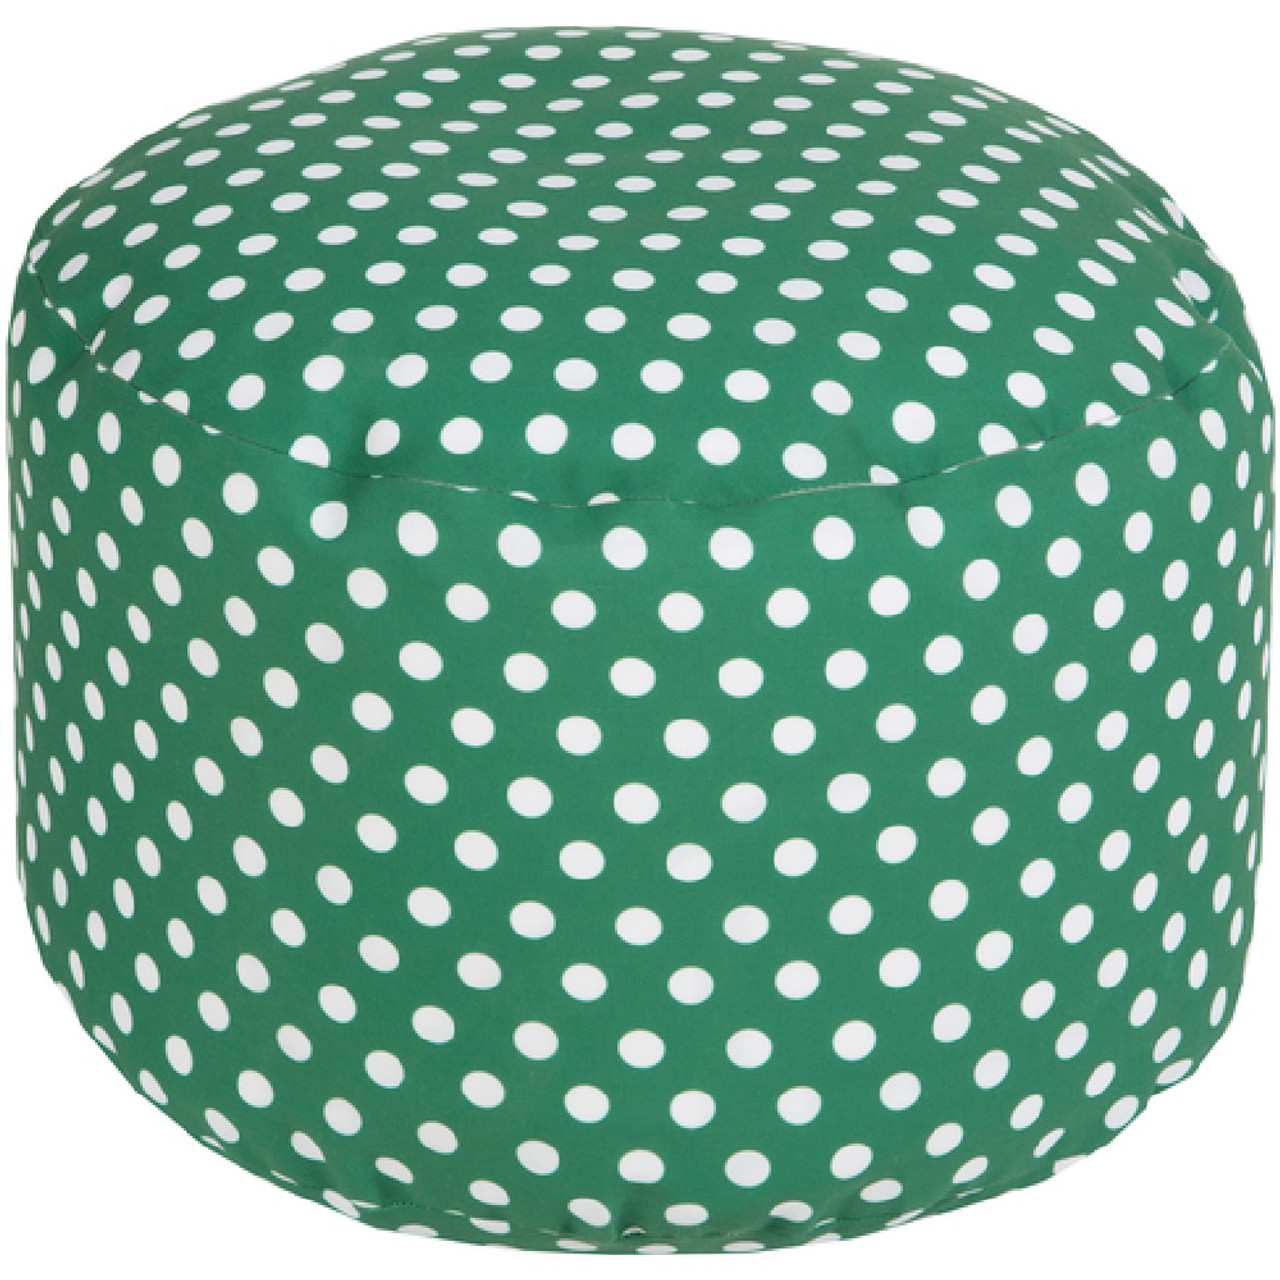 Sensational 20 Emerald Green And Ivory Simply Polka Dot Round Outdoor Patio Pouf Ottoman 31087601 Evergreenethics Interior Chair Design Evergreenethicsorg